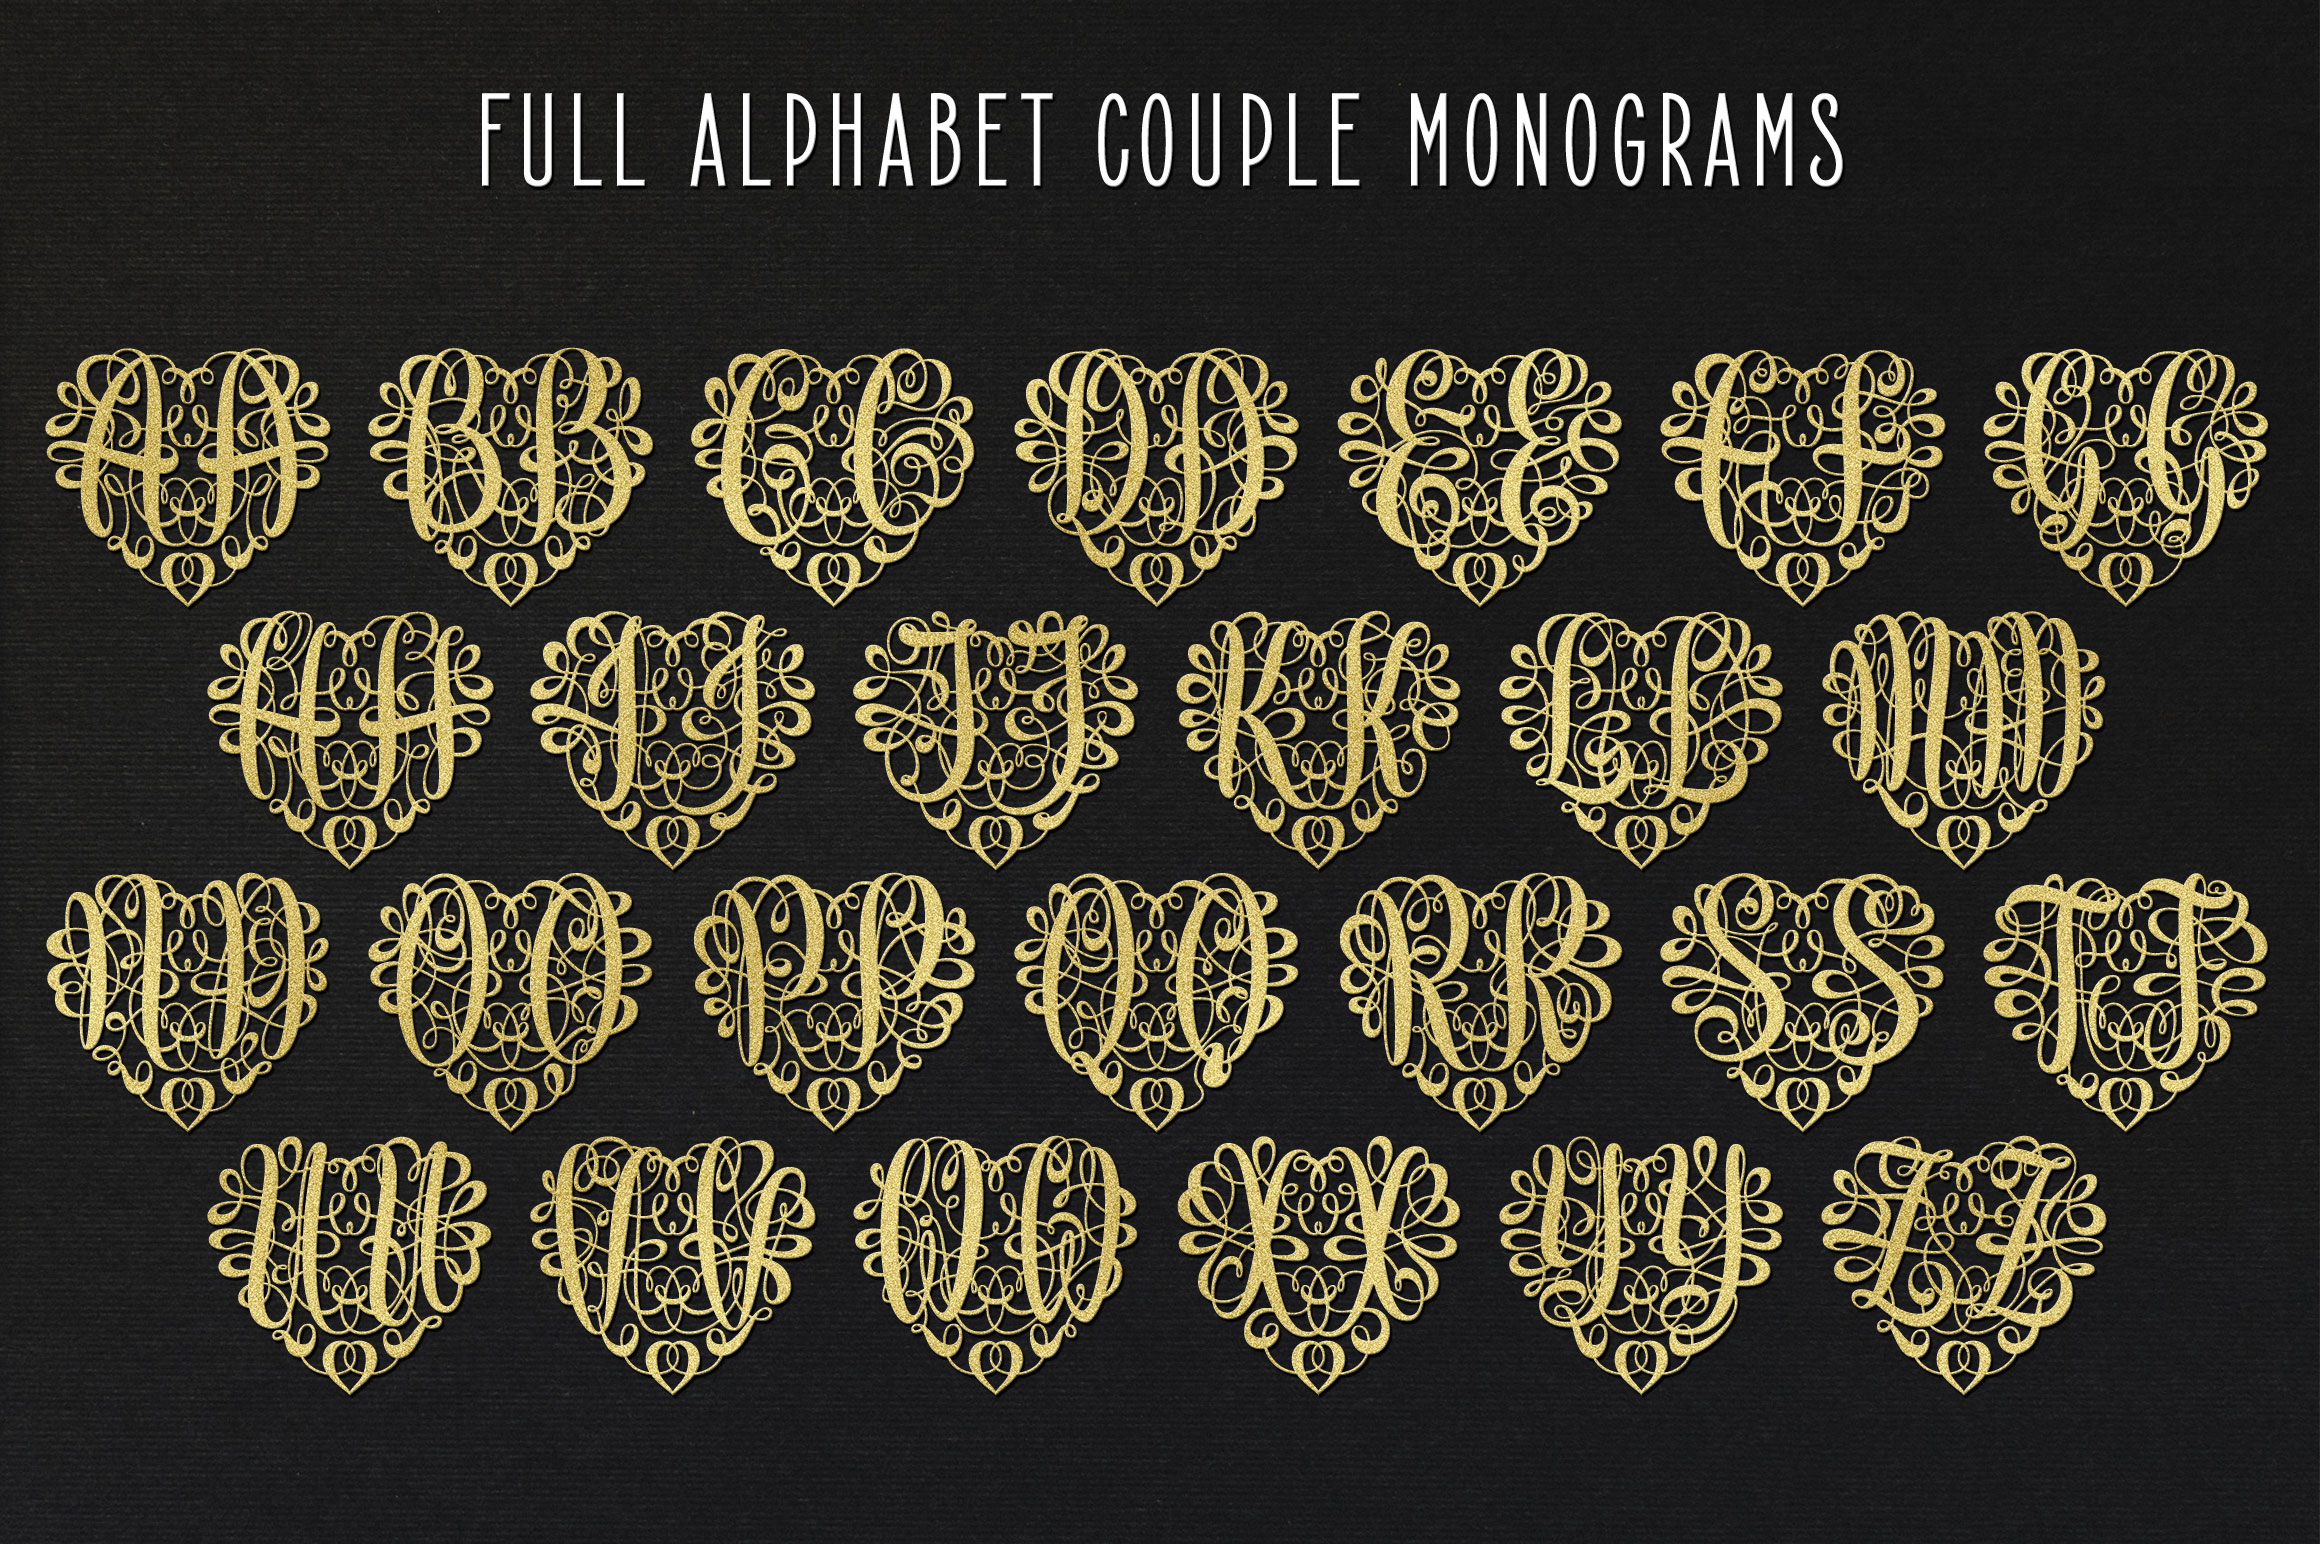 676 Heart Monograms | Ready for Papercut example image 3